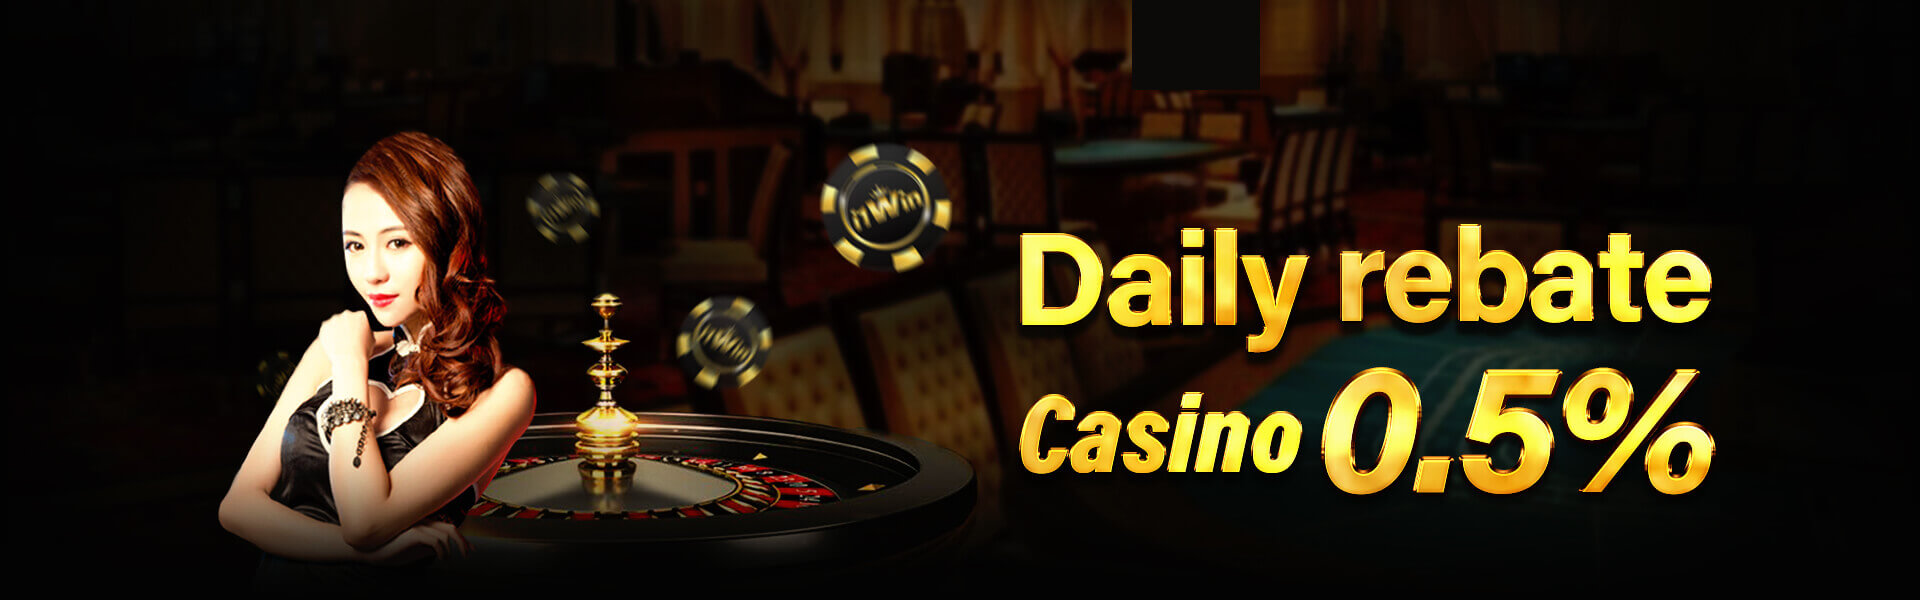 Daily rebate casino 0.5%